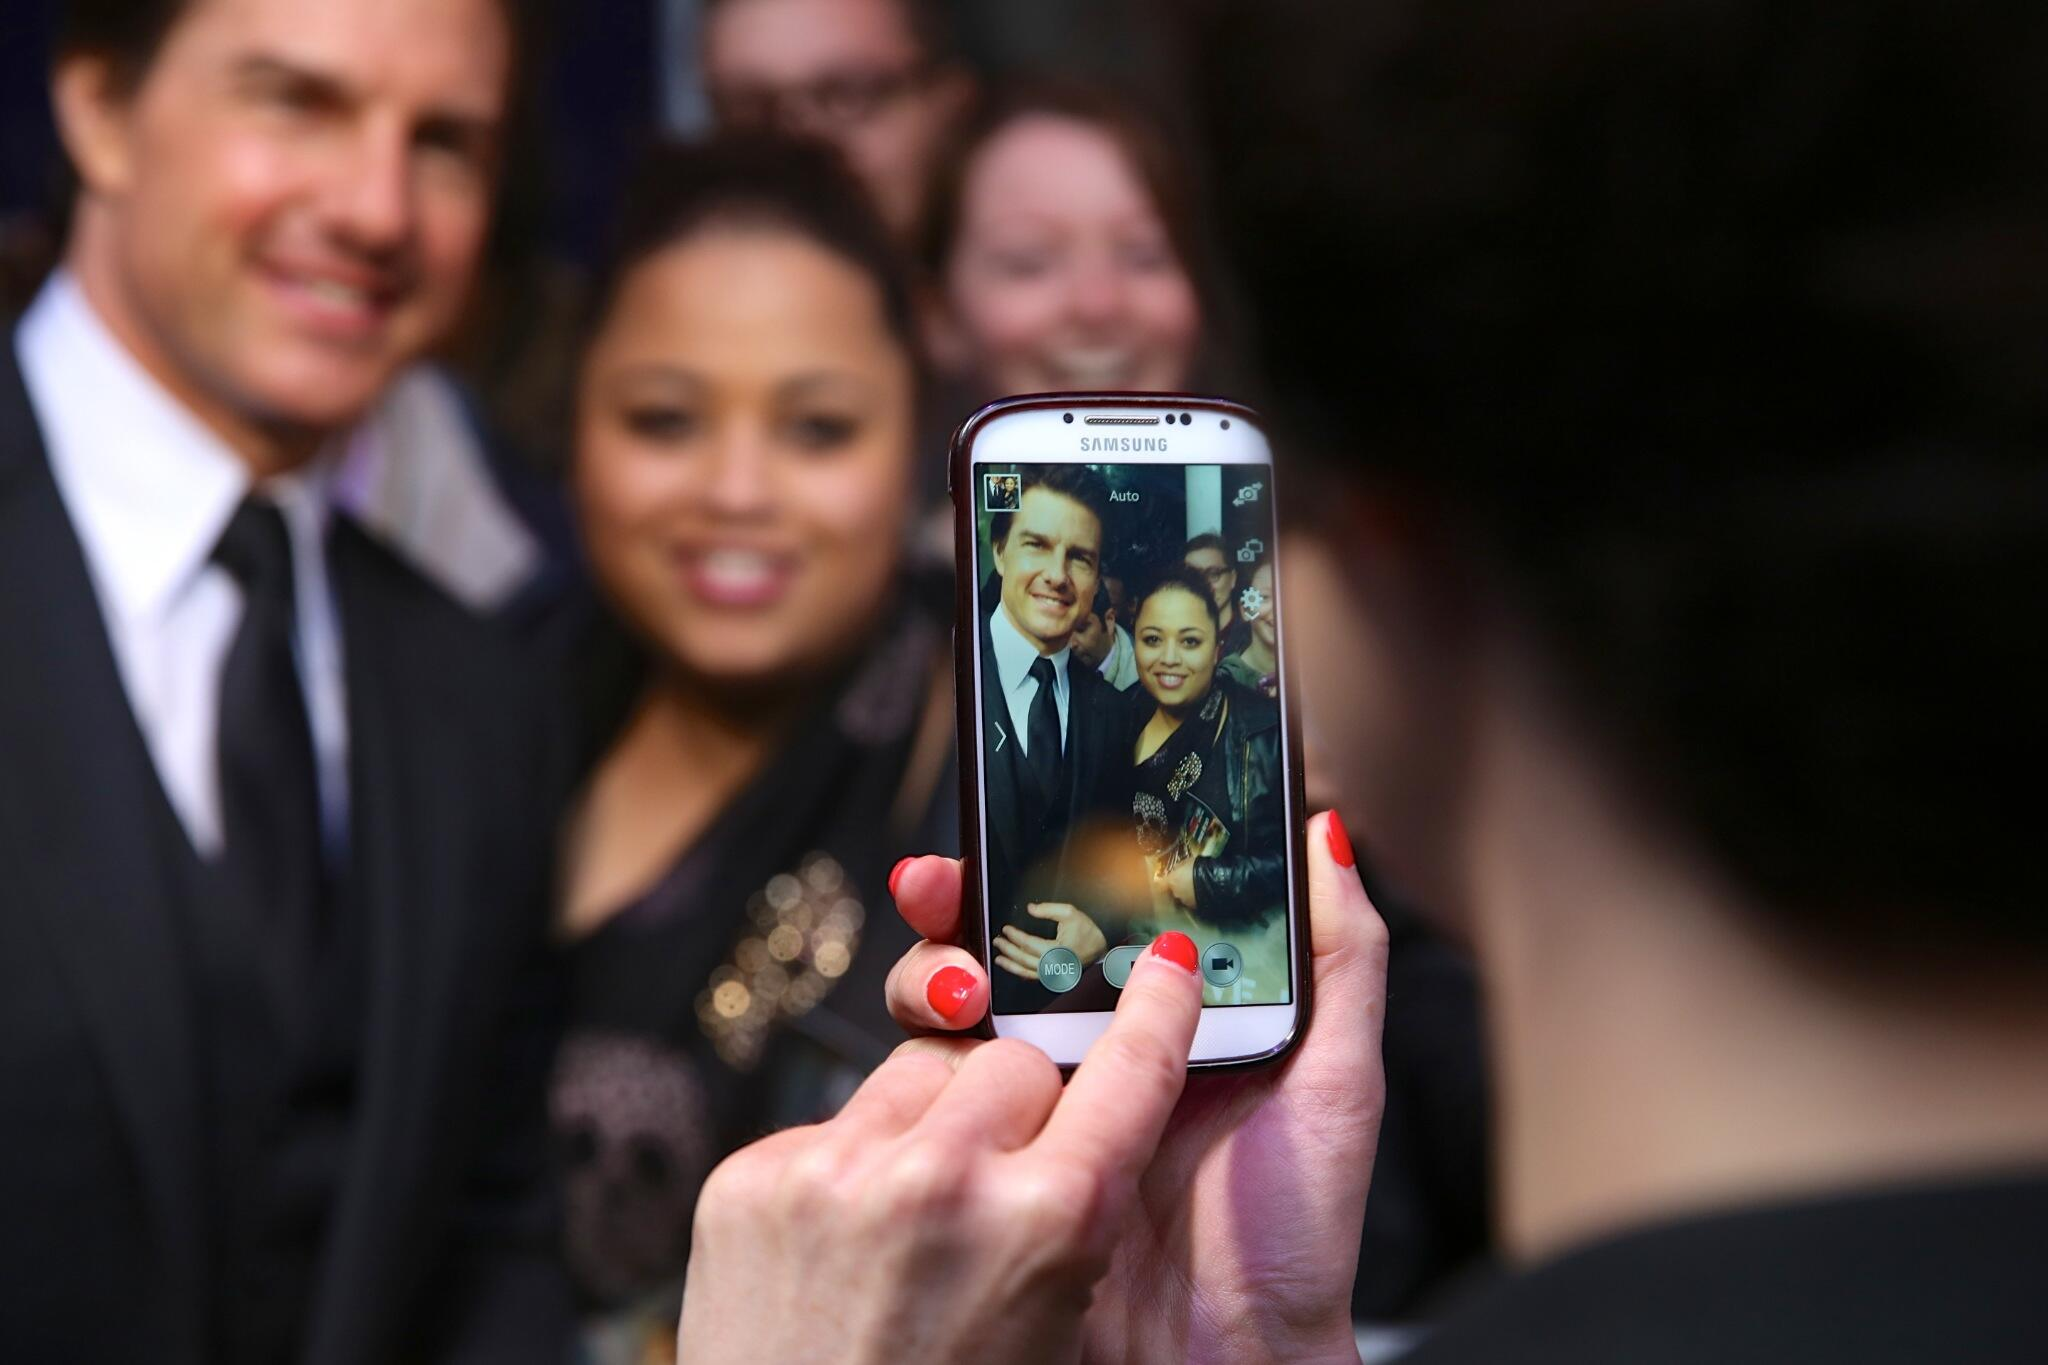 Twitter / TomCruise: Wow, loved seeing everyone ...